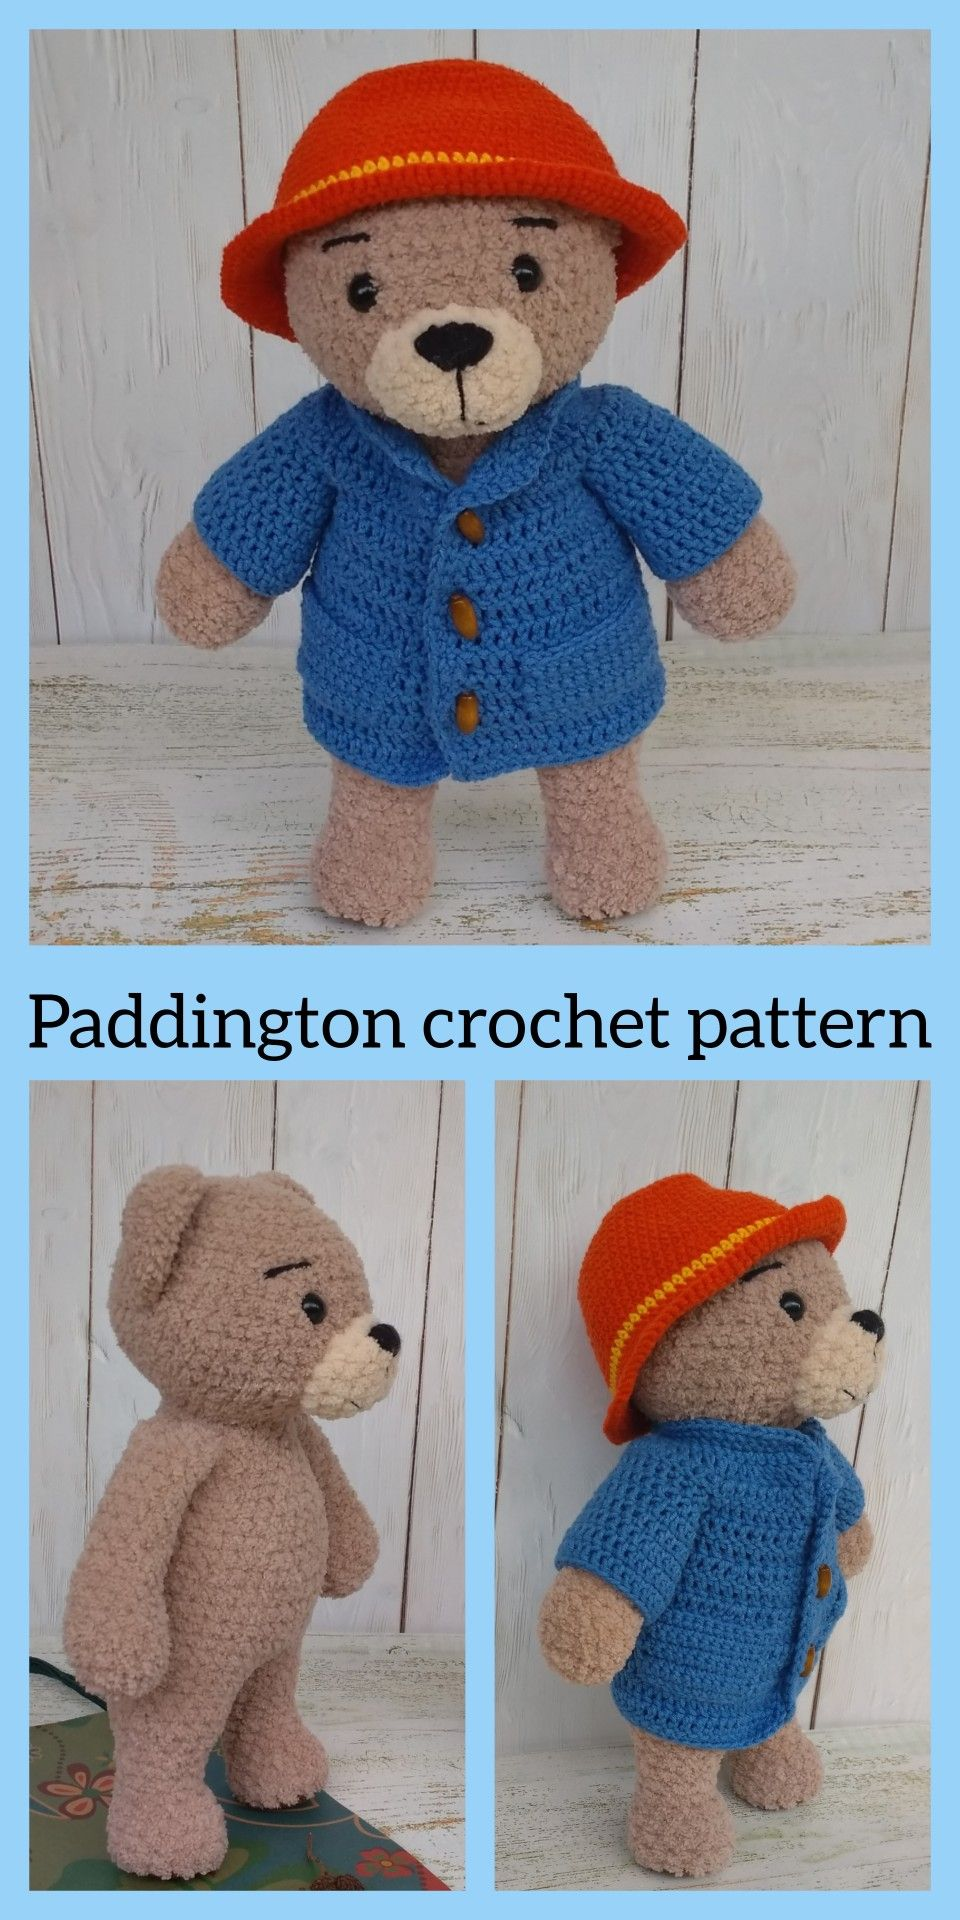 Paddington crochet pattern Amigurumi bear pattern Stuffed animals crochet pattern